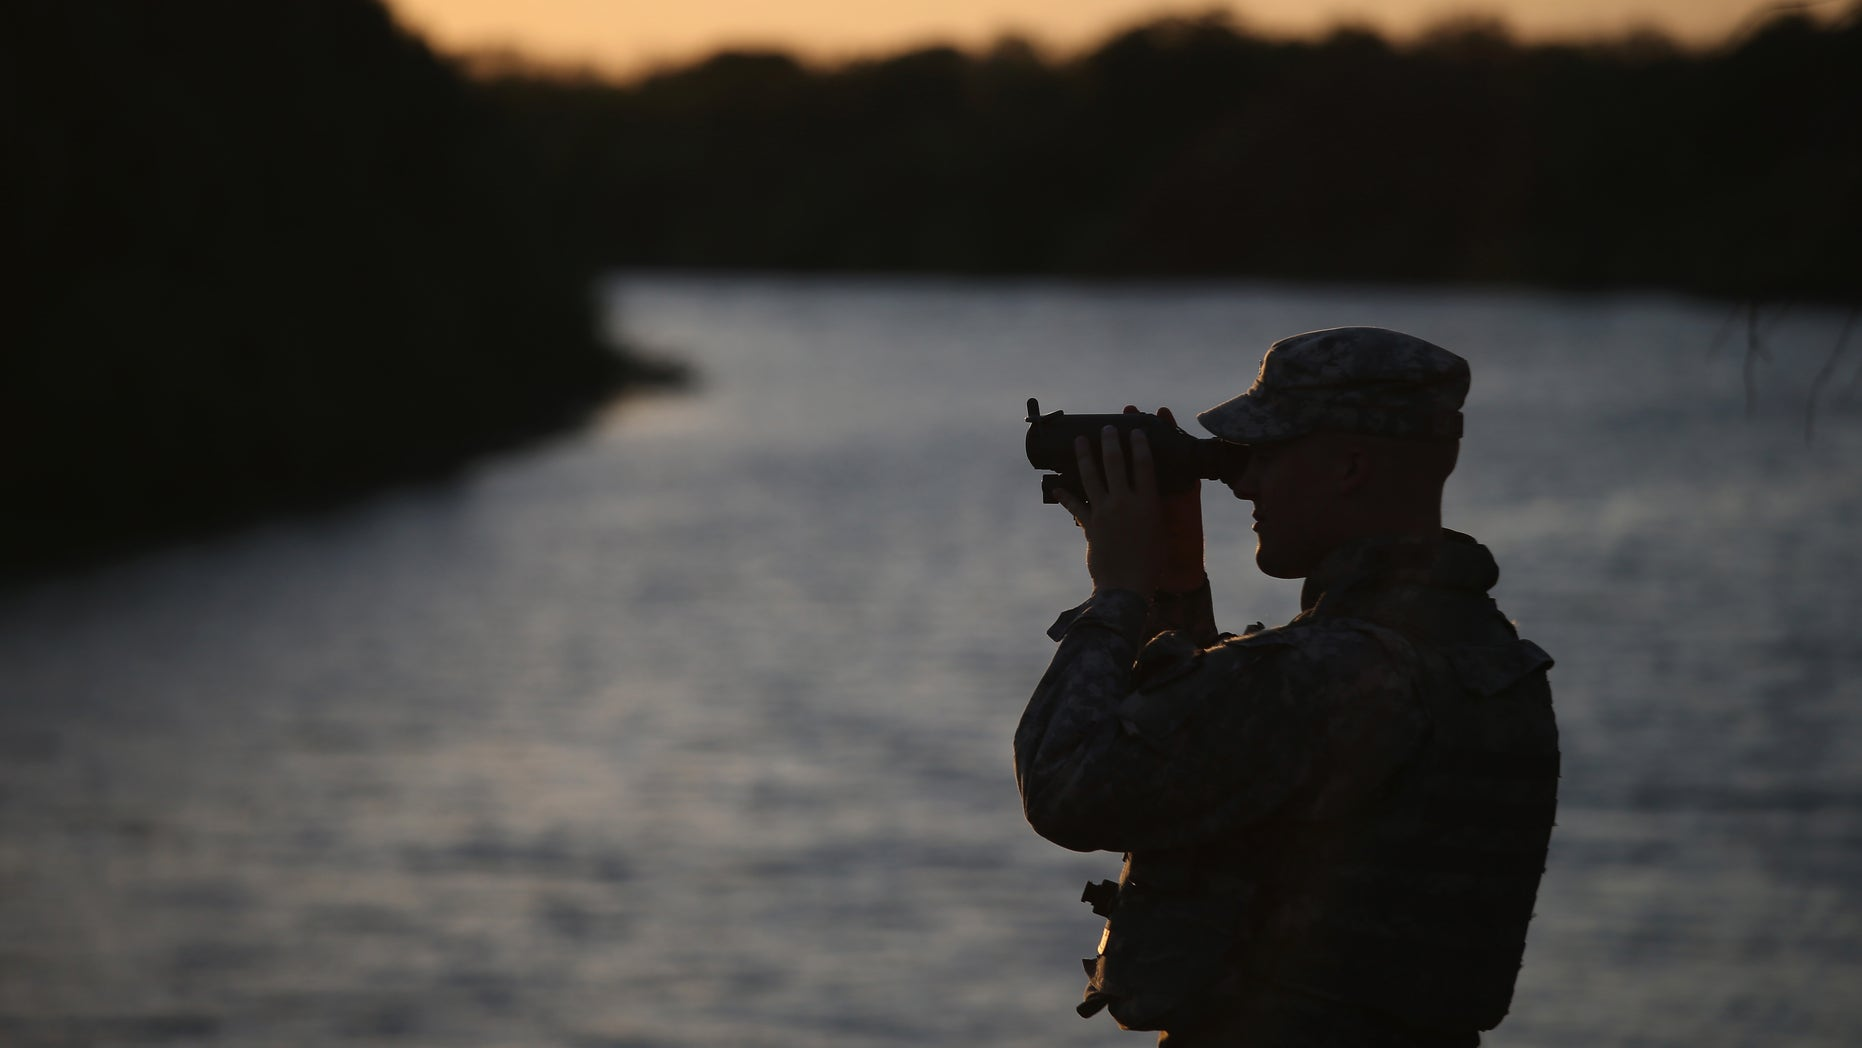 HAVANA, TX - SEPTEMBER 11:  A Texas National Guard soldier scans the Mexican side of the U.S.-Mexico border on September 11, 2014 in Havana, Texas. The troops, deployed along the Rio Grande, are part of a 1,000 strong force called up by Texas Governor Rick Perry to guard the border. The soldiers were sent to help state and federal law enforcement stem a surge of illegal immigrants, many of them families and unaccompanied minors.  (Photo by John Moore/Getty Images)